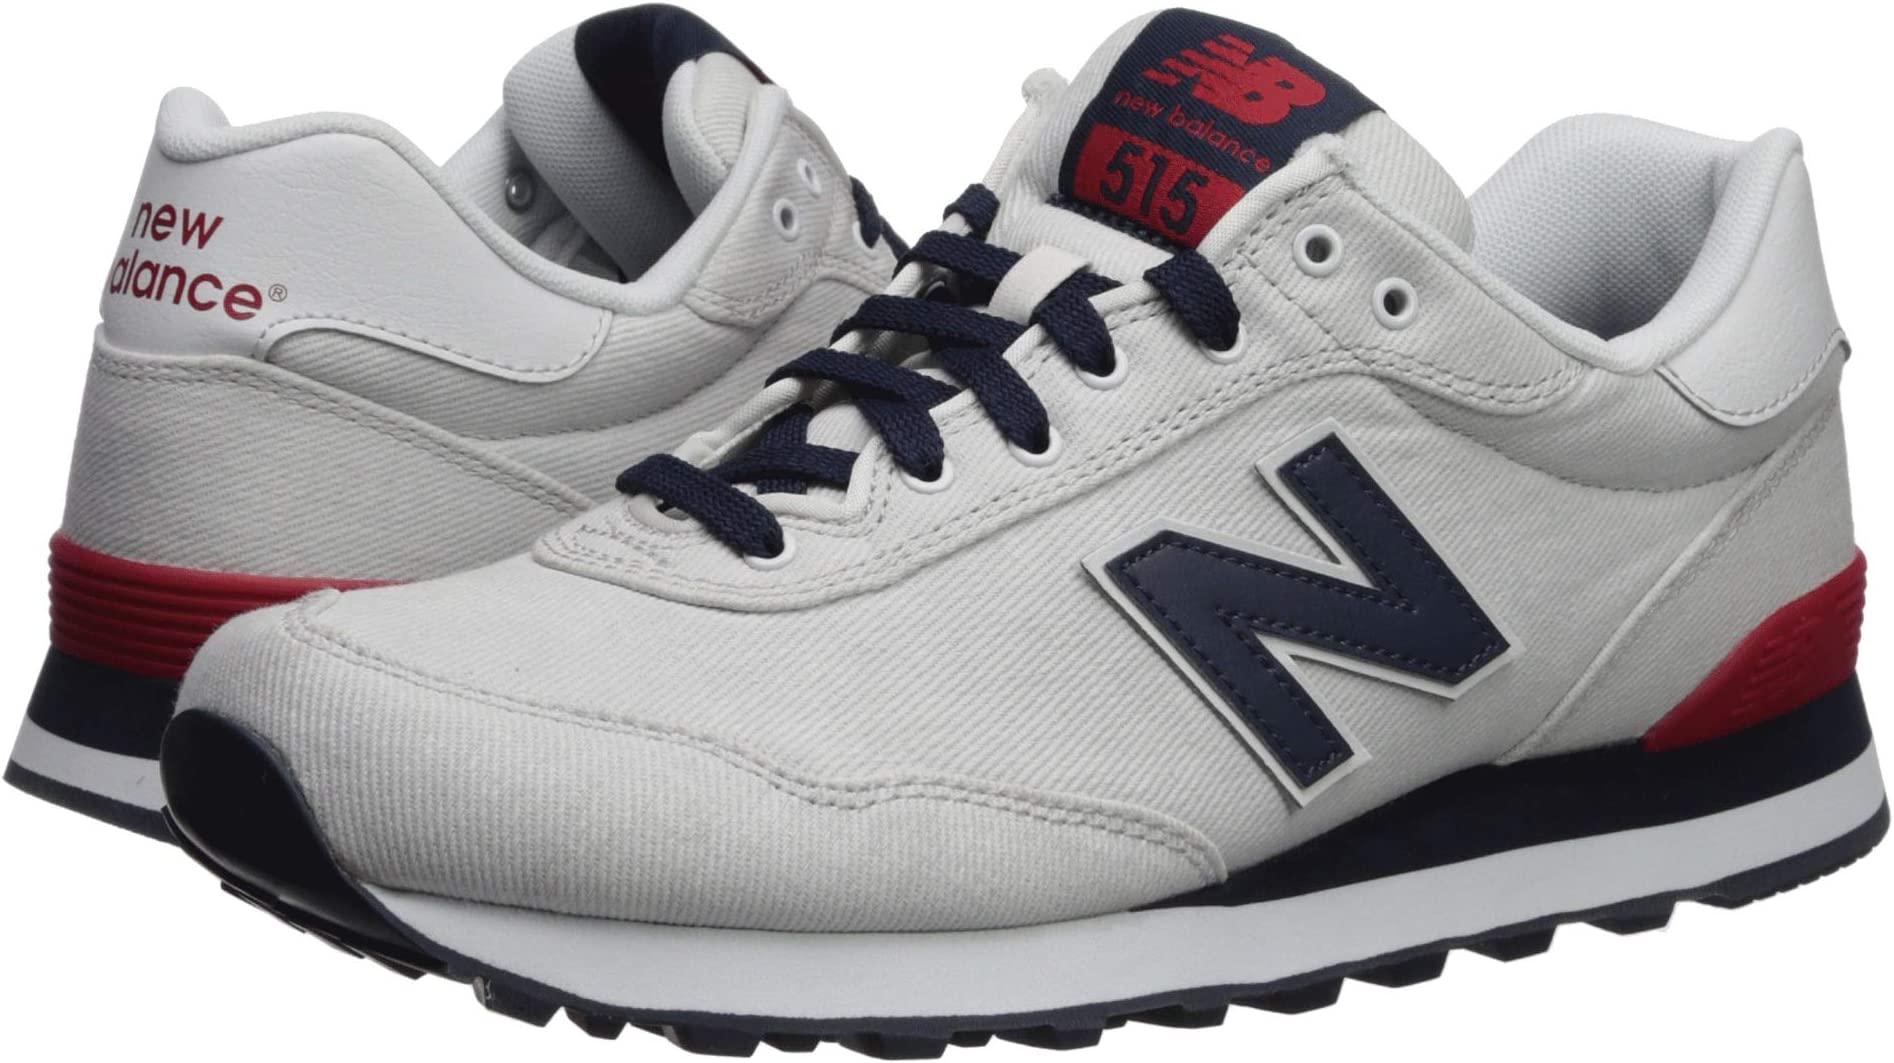 0e38c5aa2d New Balance Shoes, Clothing, Activewear, Socks | Zappos.com